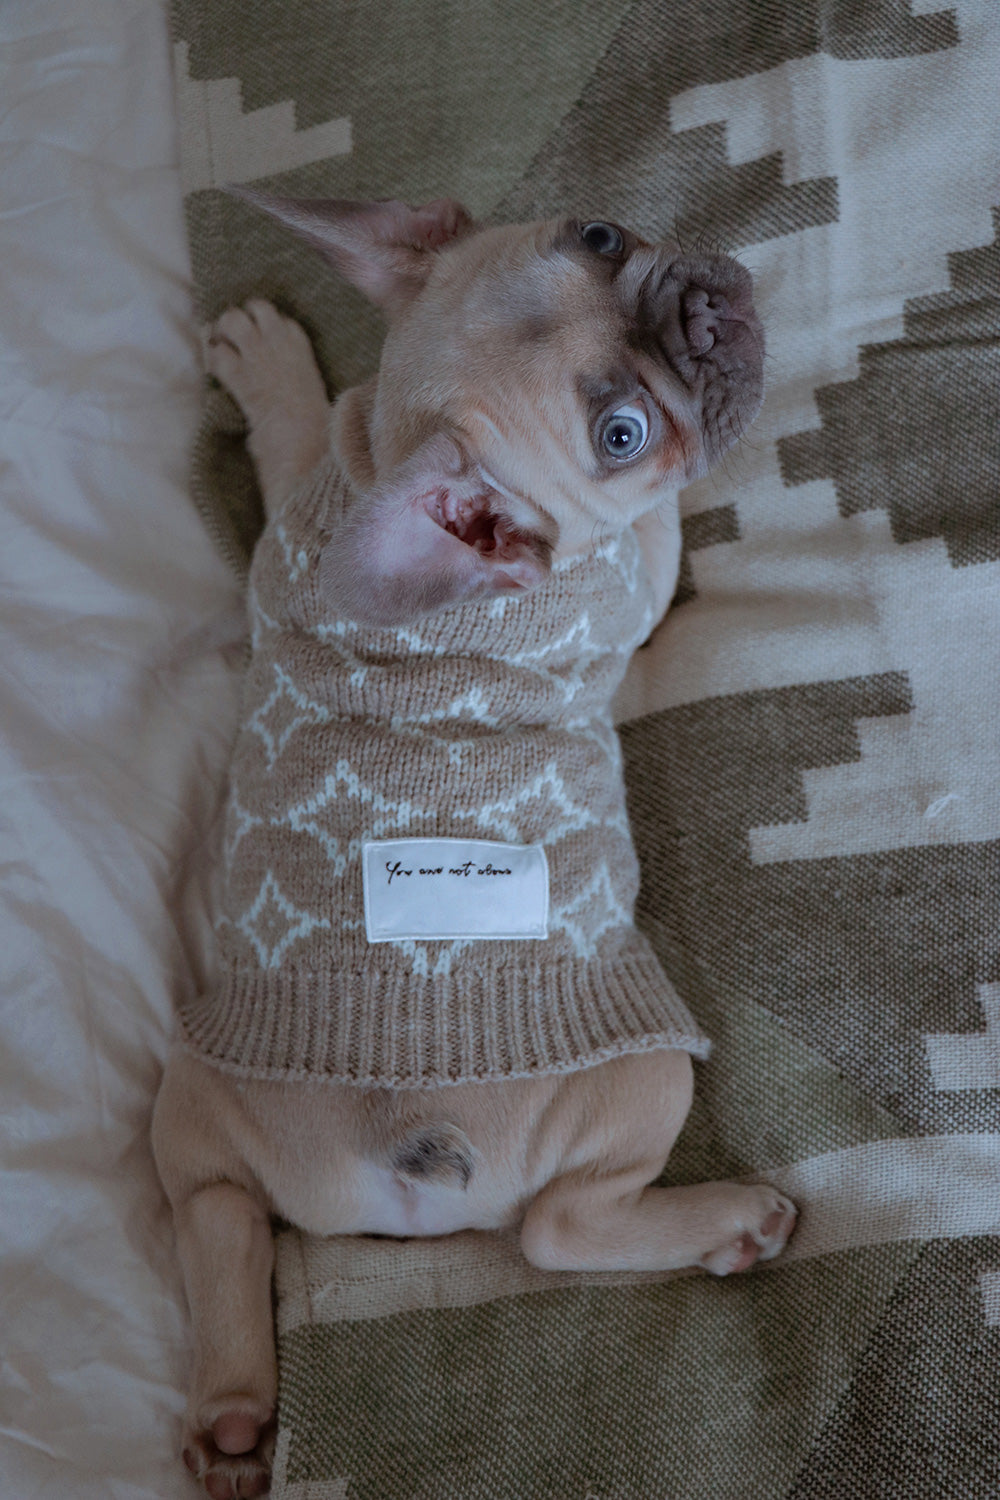 A dog with an OverGlam jumper laying in a bed